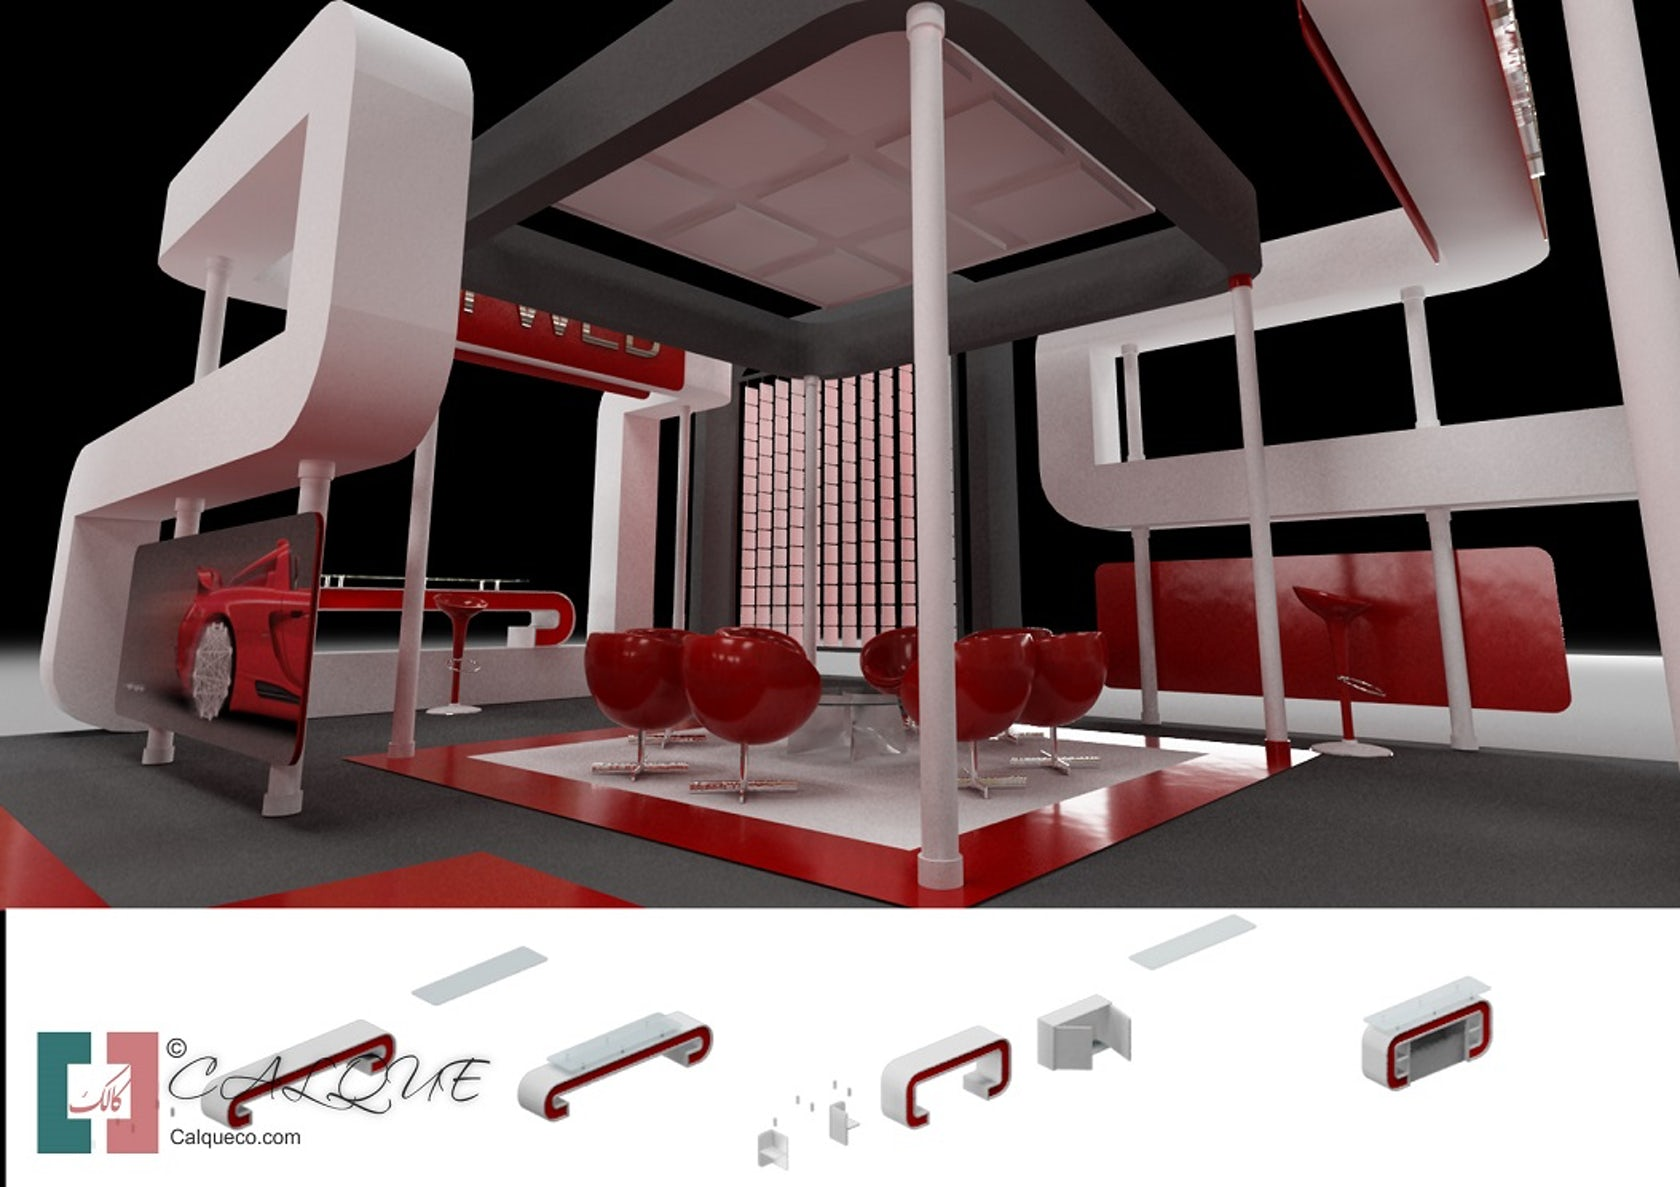 Exhibition Stall Icon : Exhibition stall portable architizer